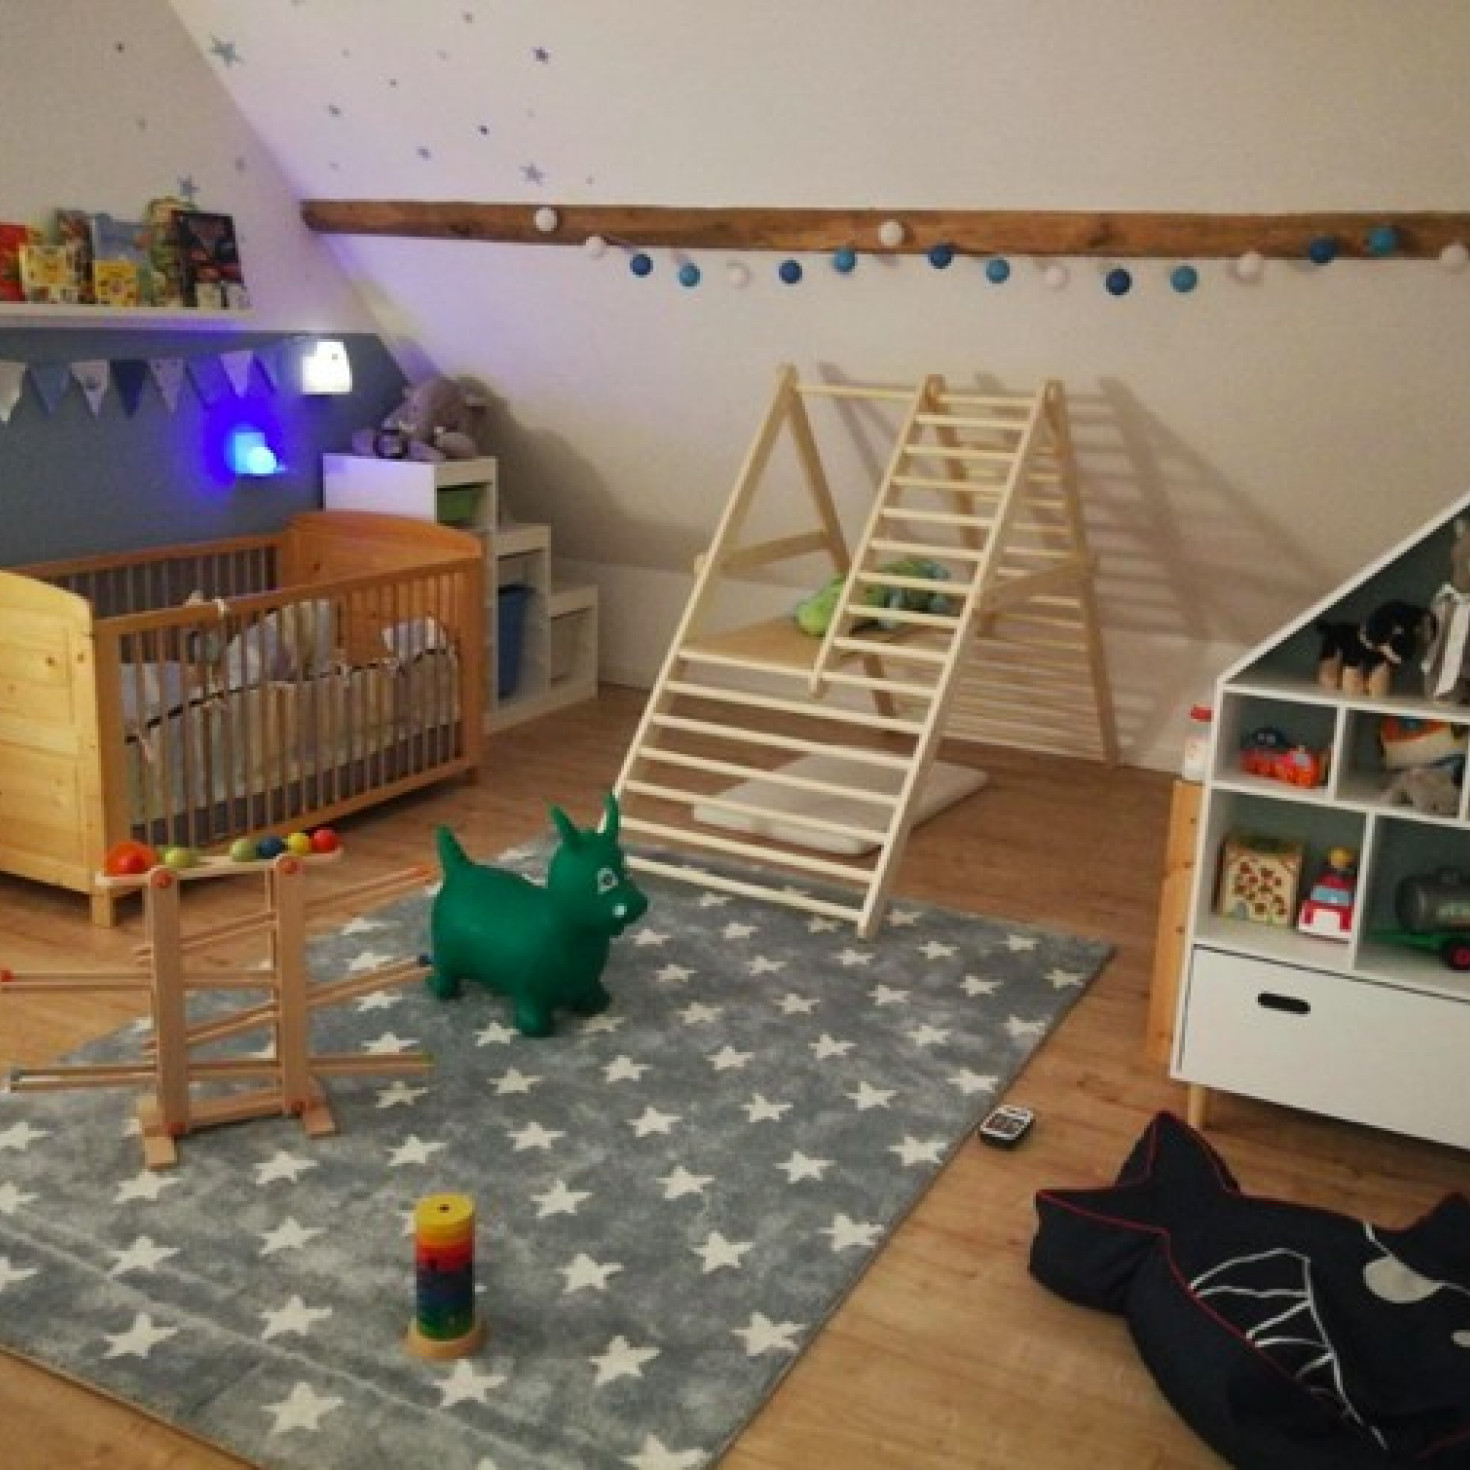 A climbing ladder for toddlers located in a child's bedroom